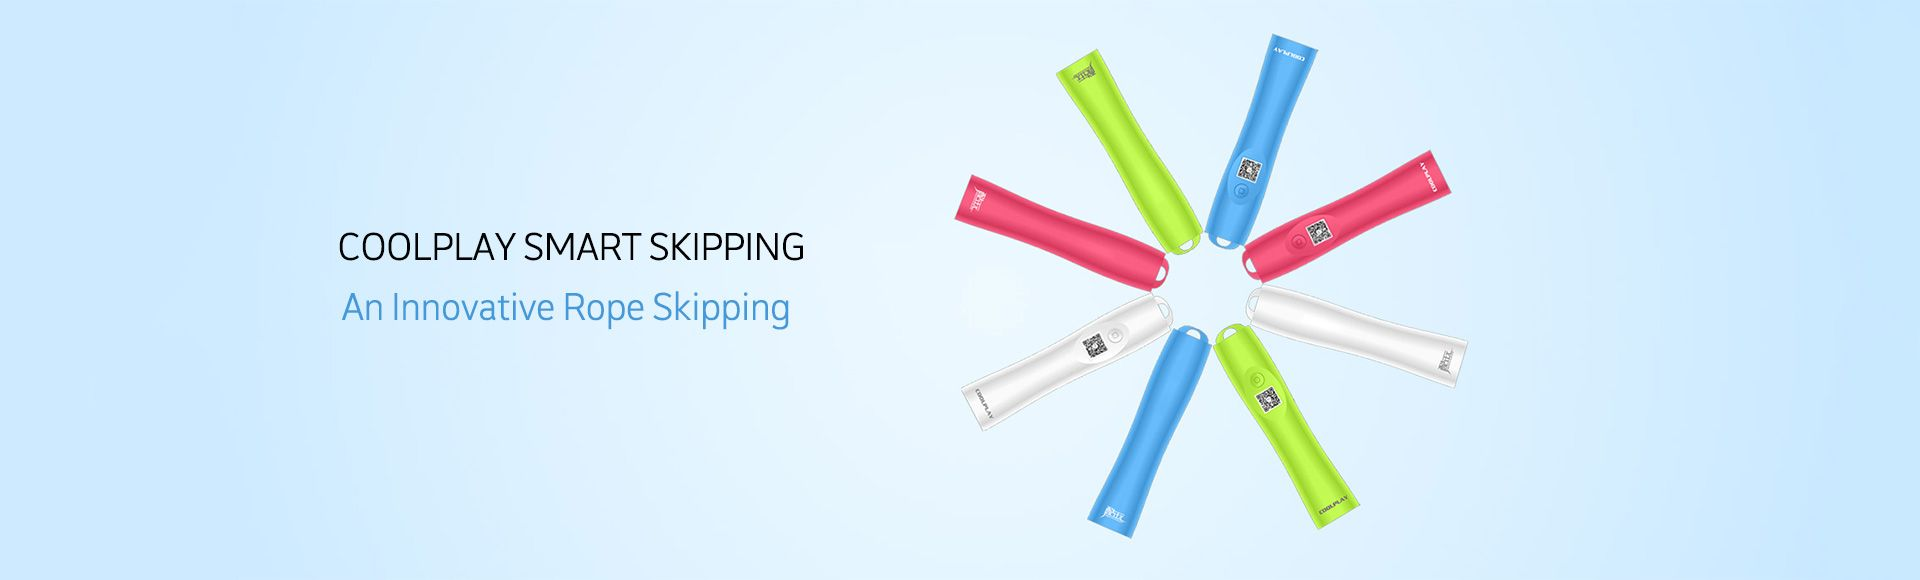 COOLPLAY Smart Skipping - available on smartphone, android smart TV and OTT box